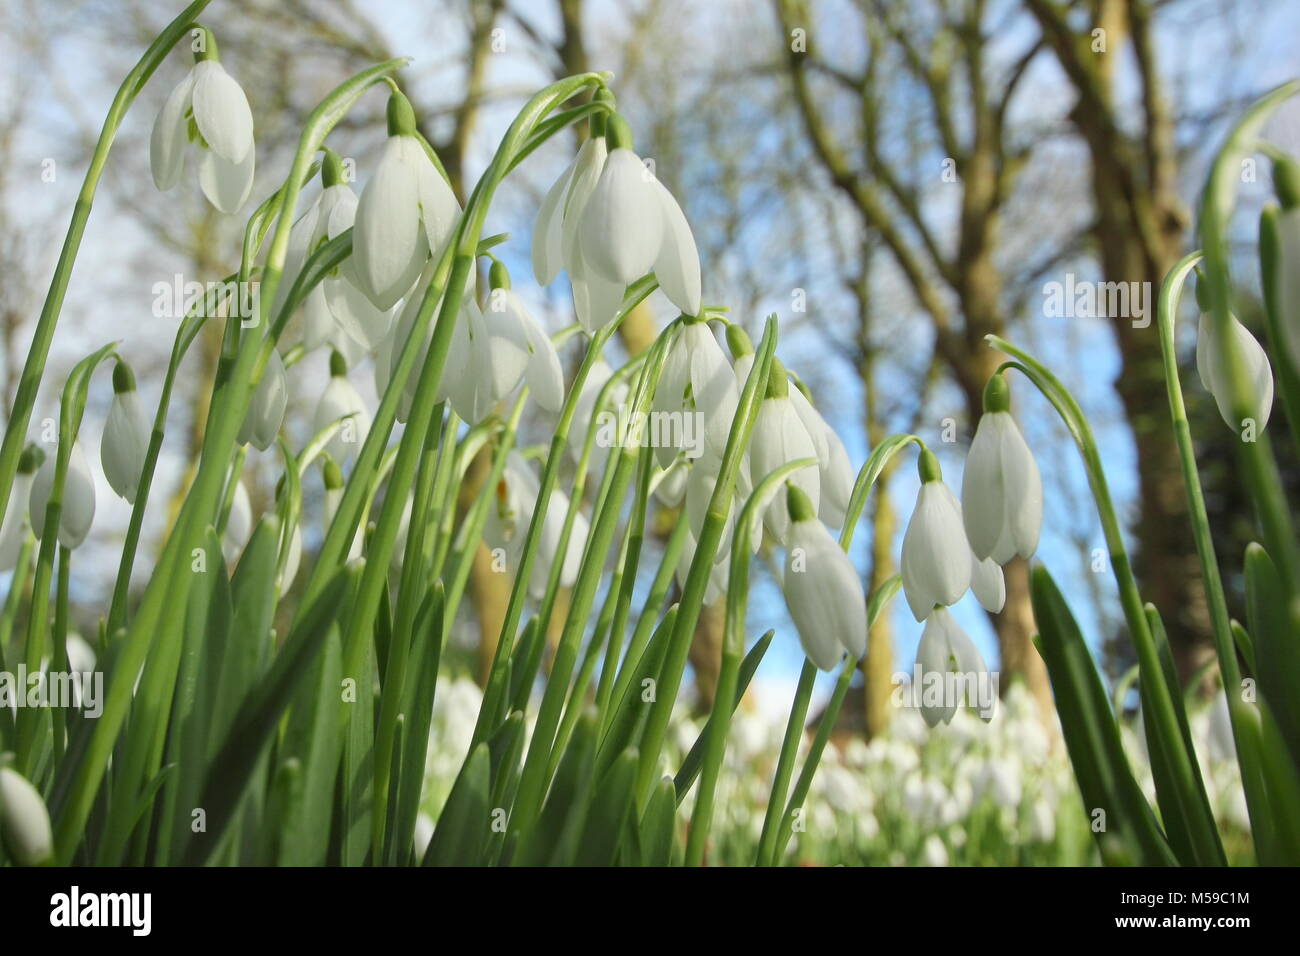 Snowdrops (galanthus nivalis) in the woodland garden at Hopton Hall, Derbyshire during the annual open garden event - Stock Image